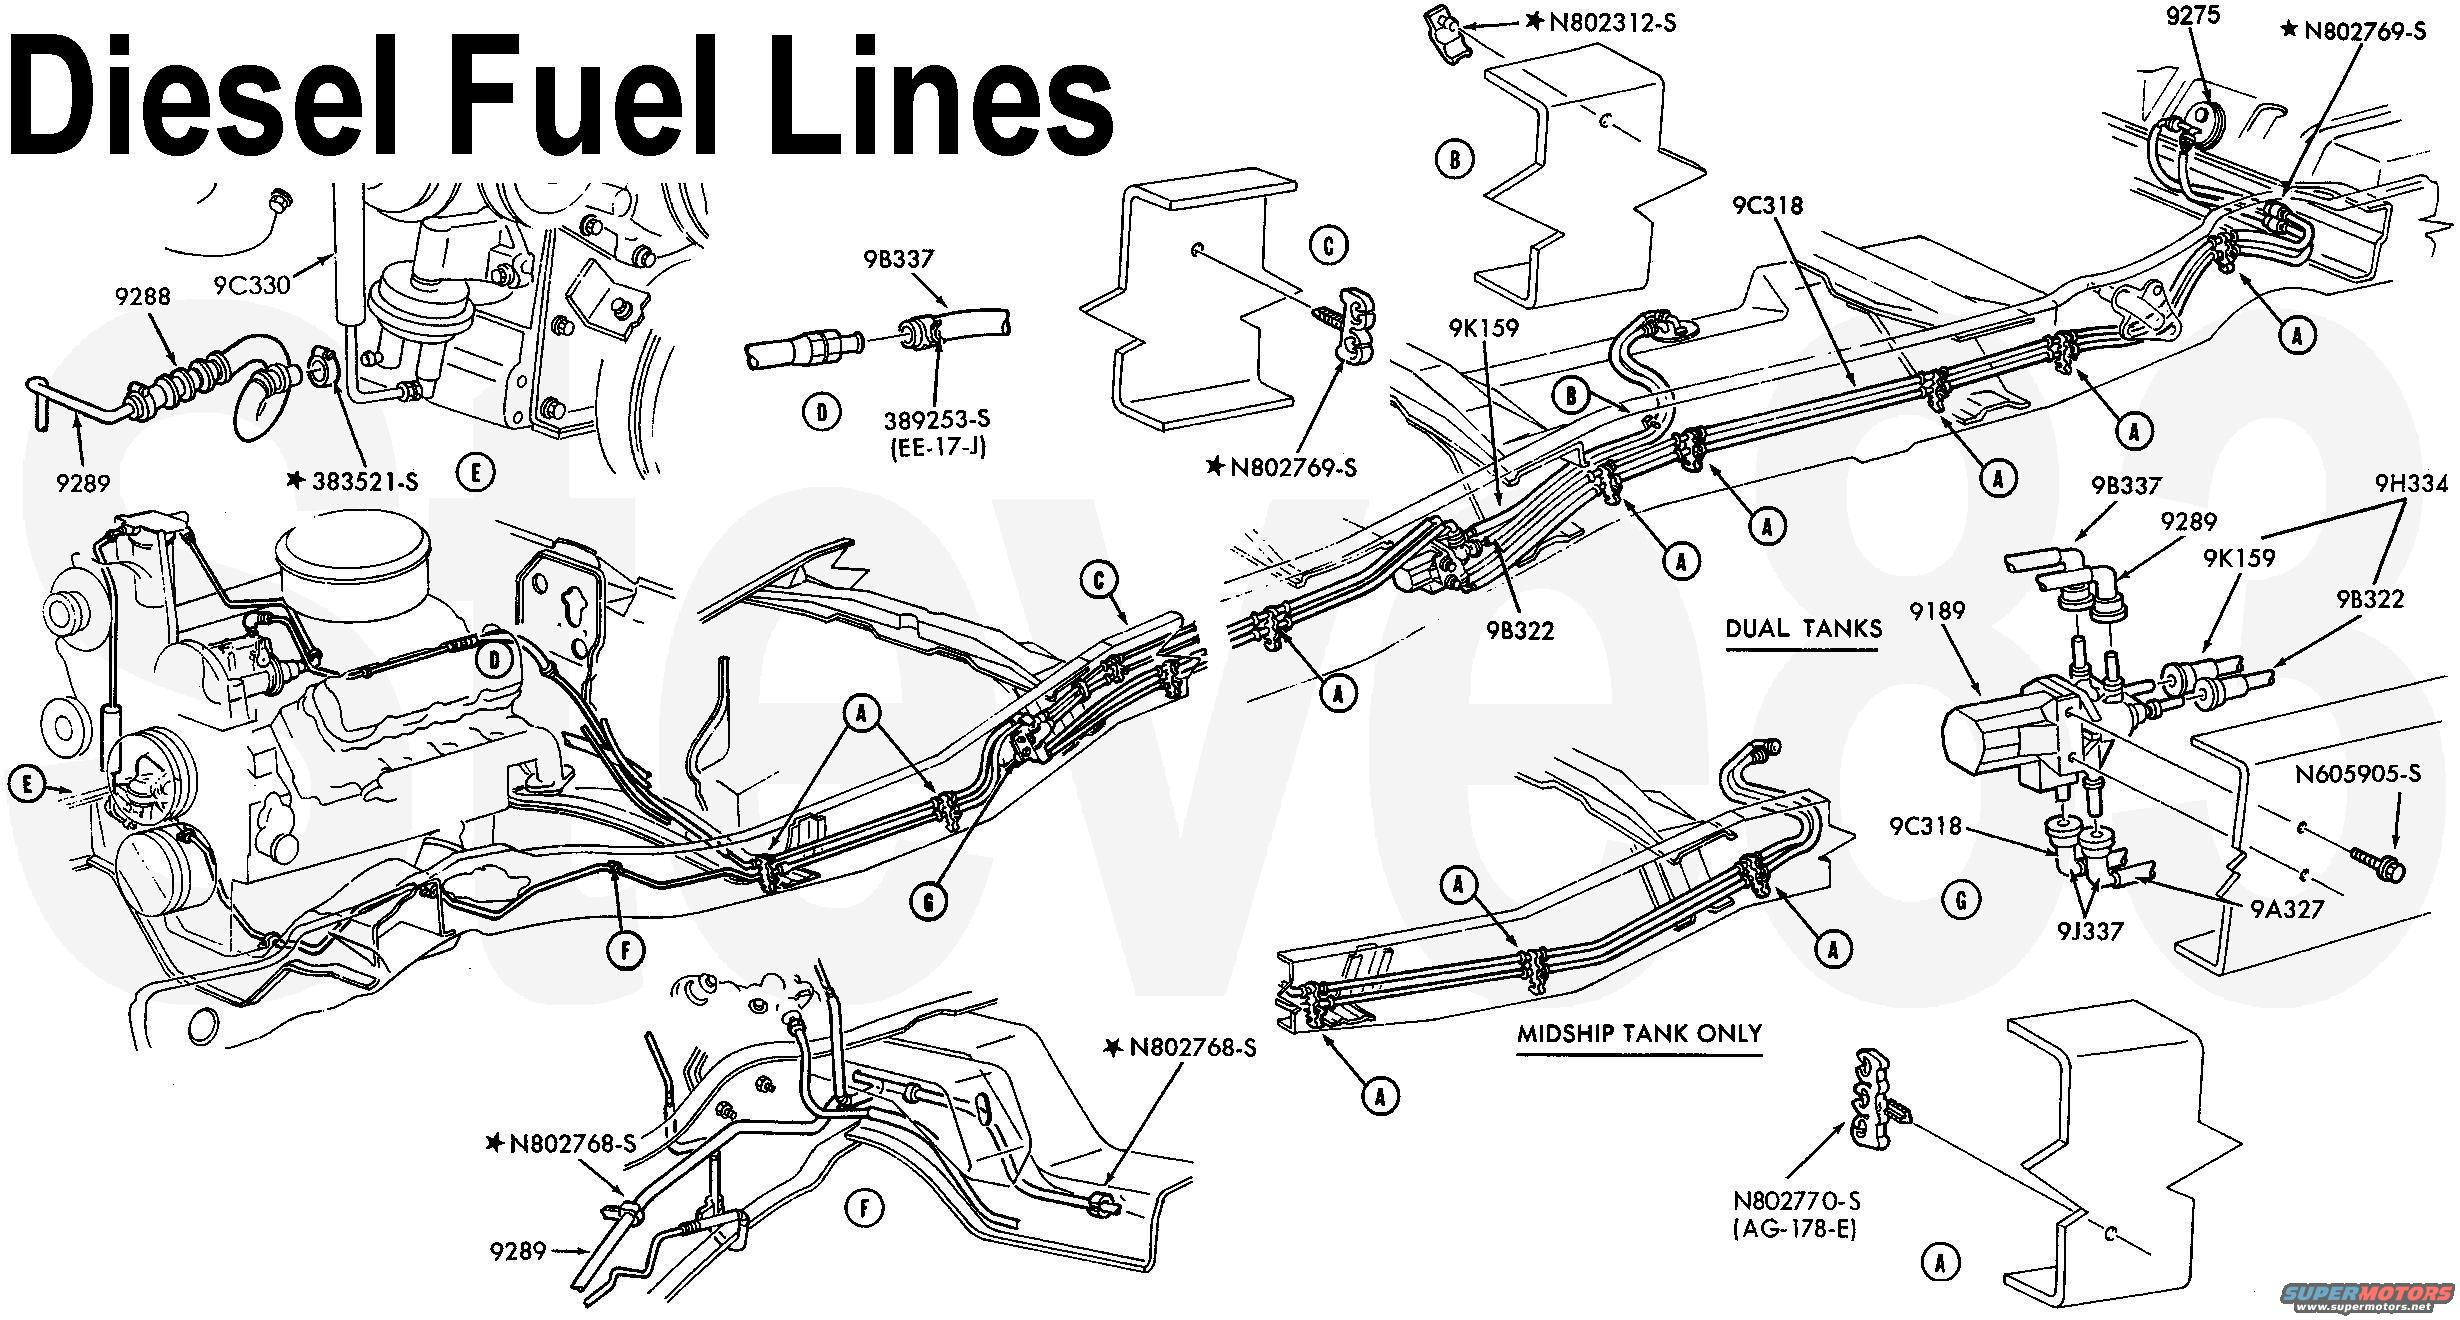 Zt 7 3 Idi Fuel Line Diagram Schematic Wiring